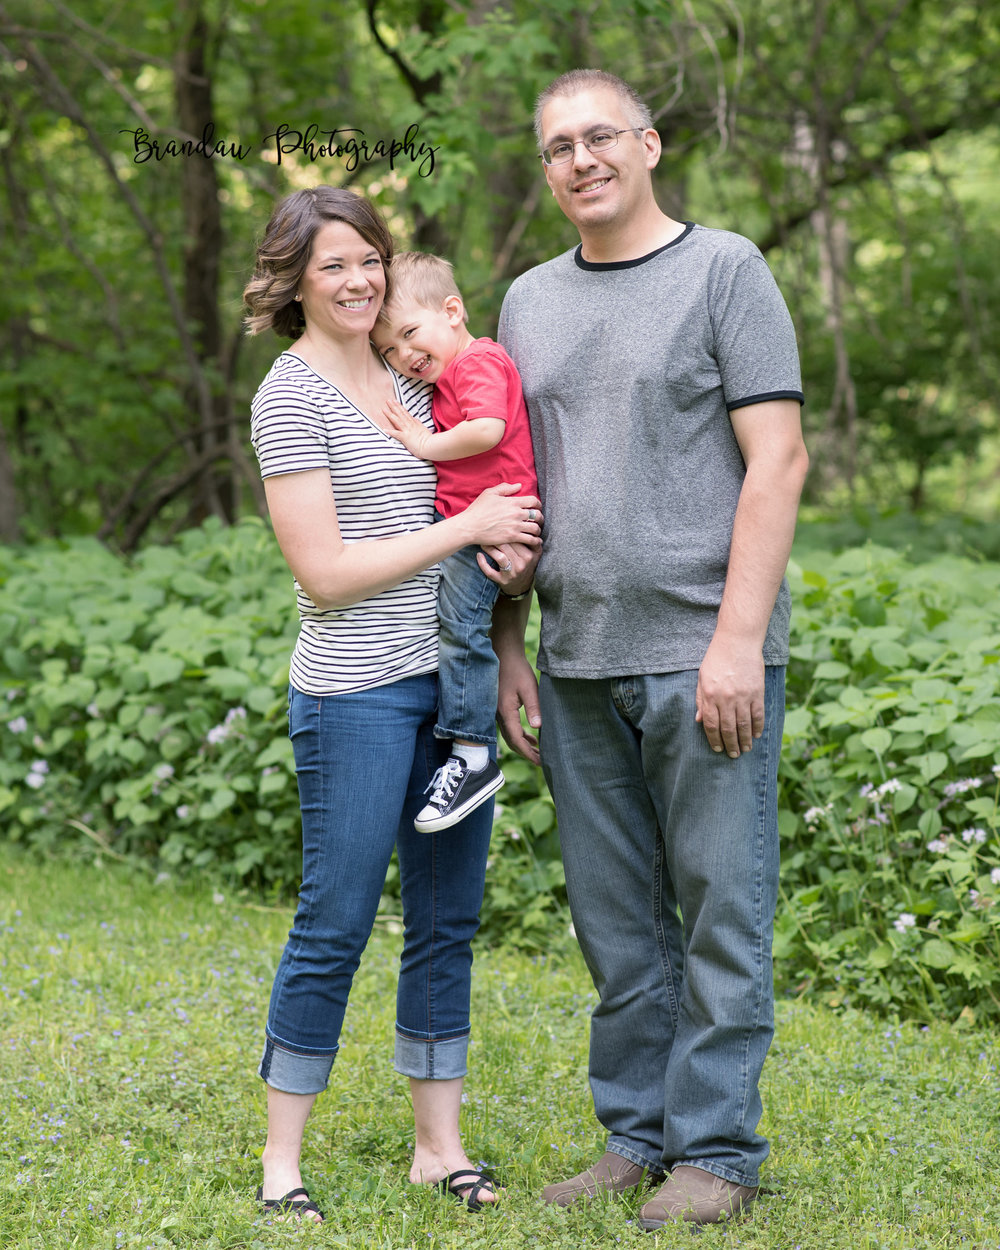 Brandau Photography - Family Photo - Central Iowa - Ames Iowa